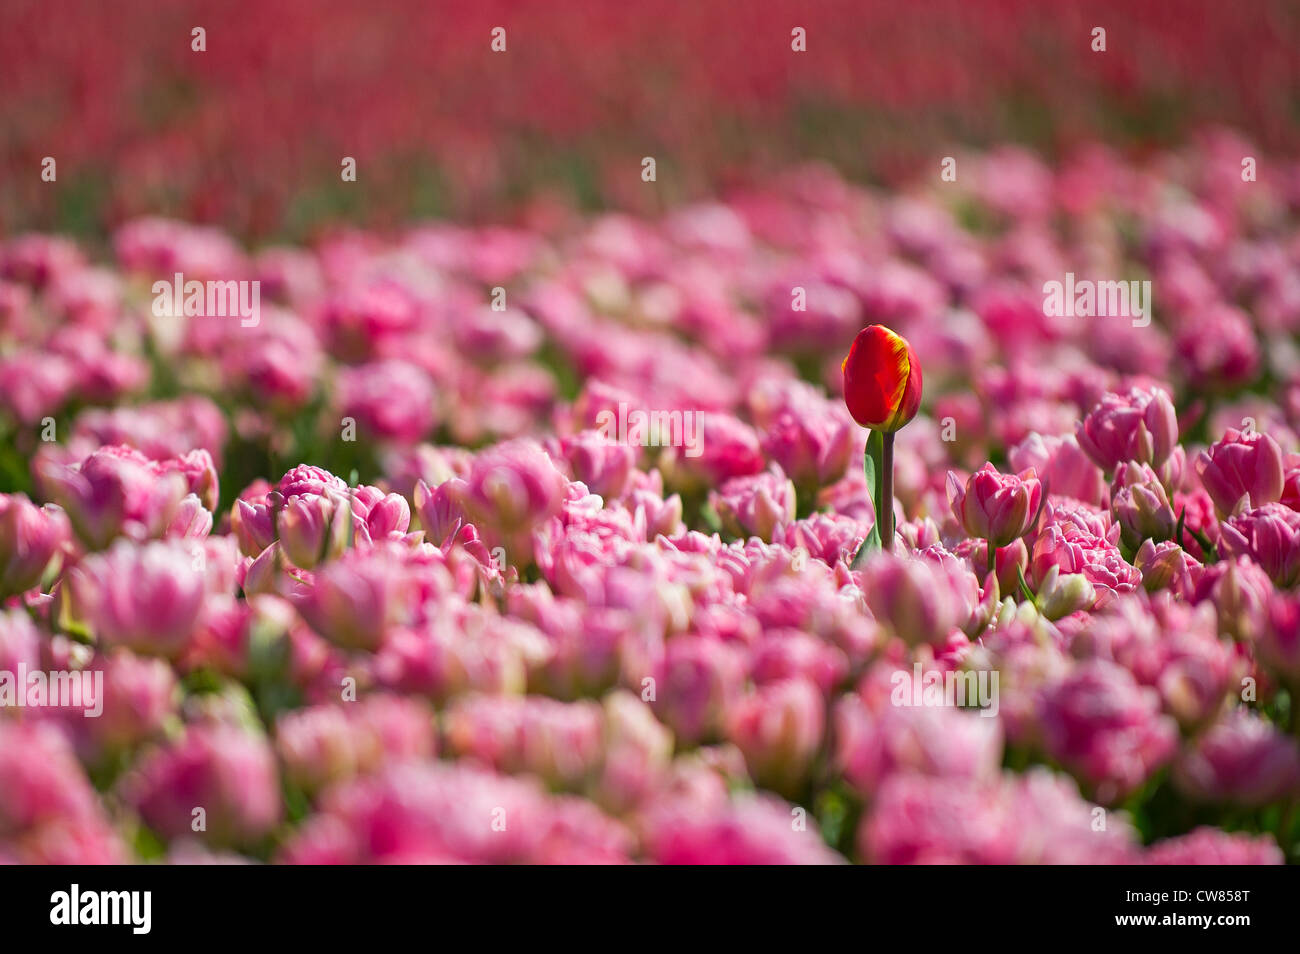 Tulips in the Dutch tulip fields - Stock Image